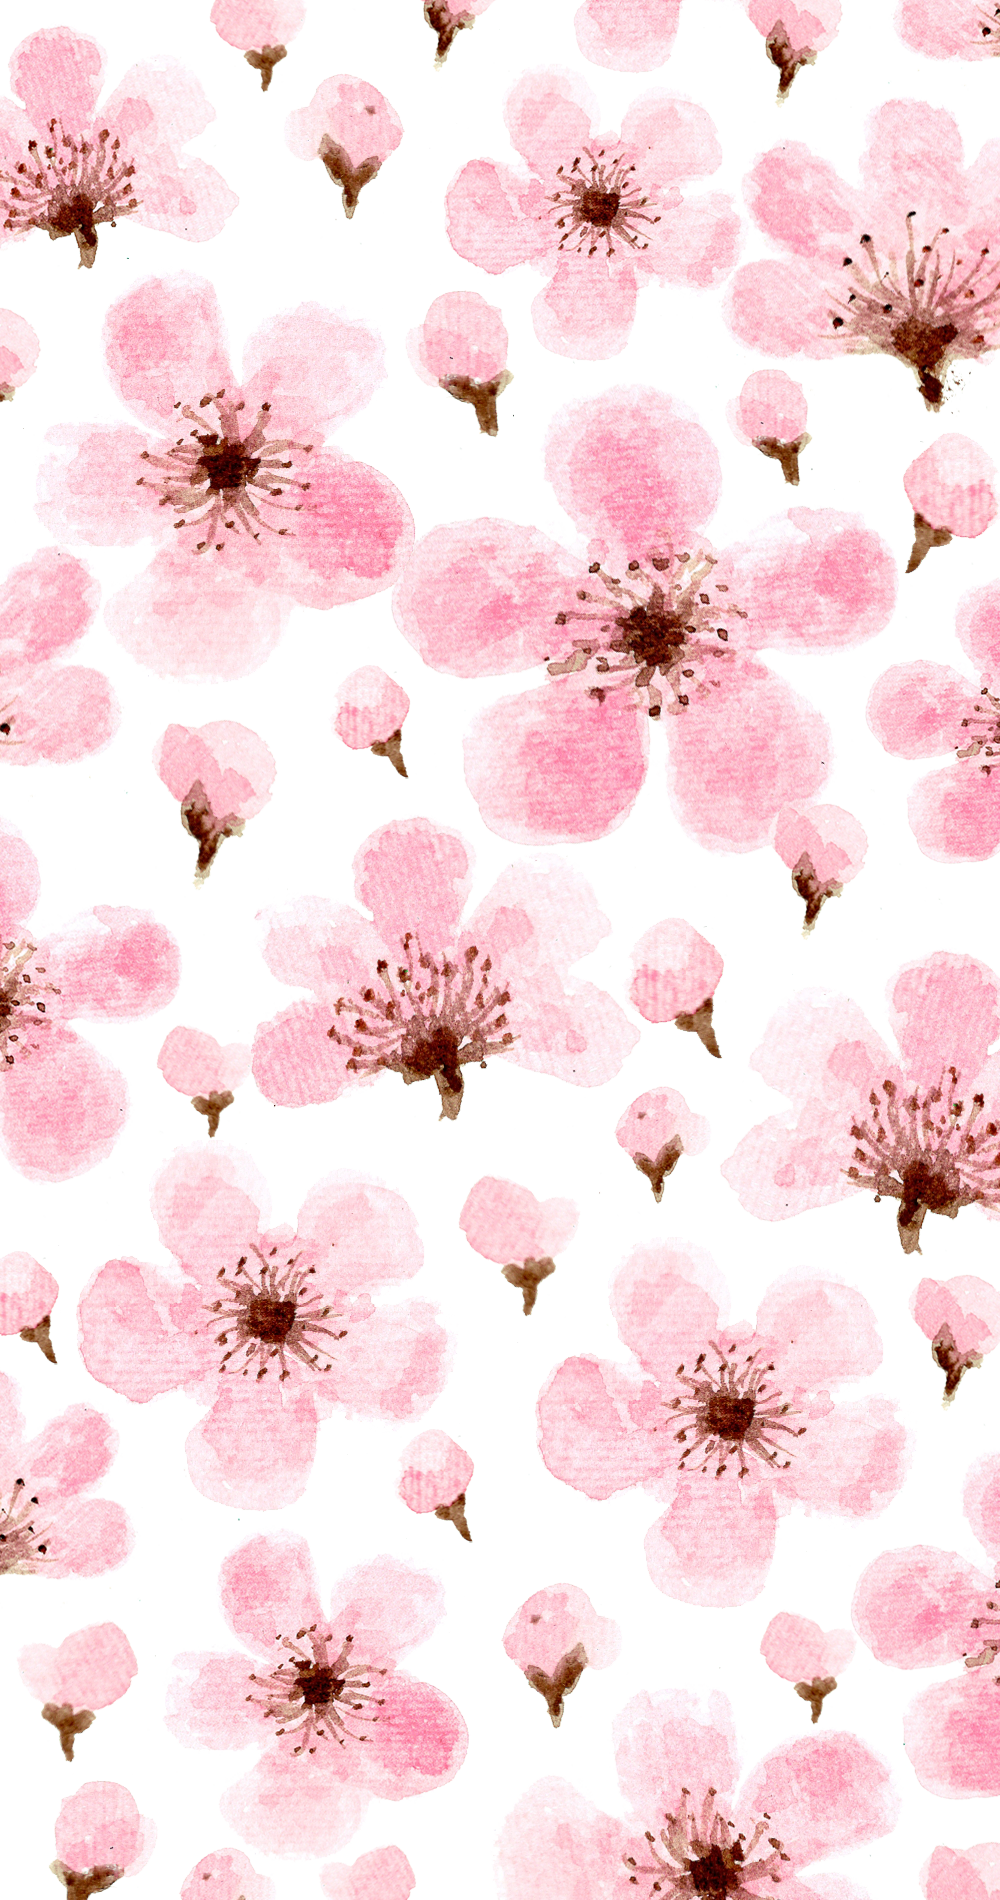 Cool Wallpaper Cny Ideas Art Floral Pink Flowers Wallpaper Drawing Wallpaper Iphone Wallpaper